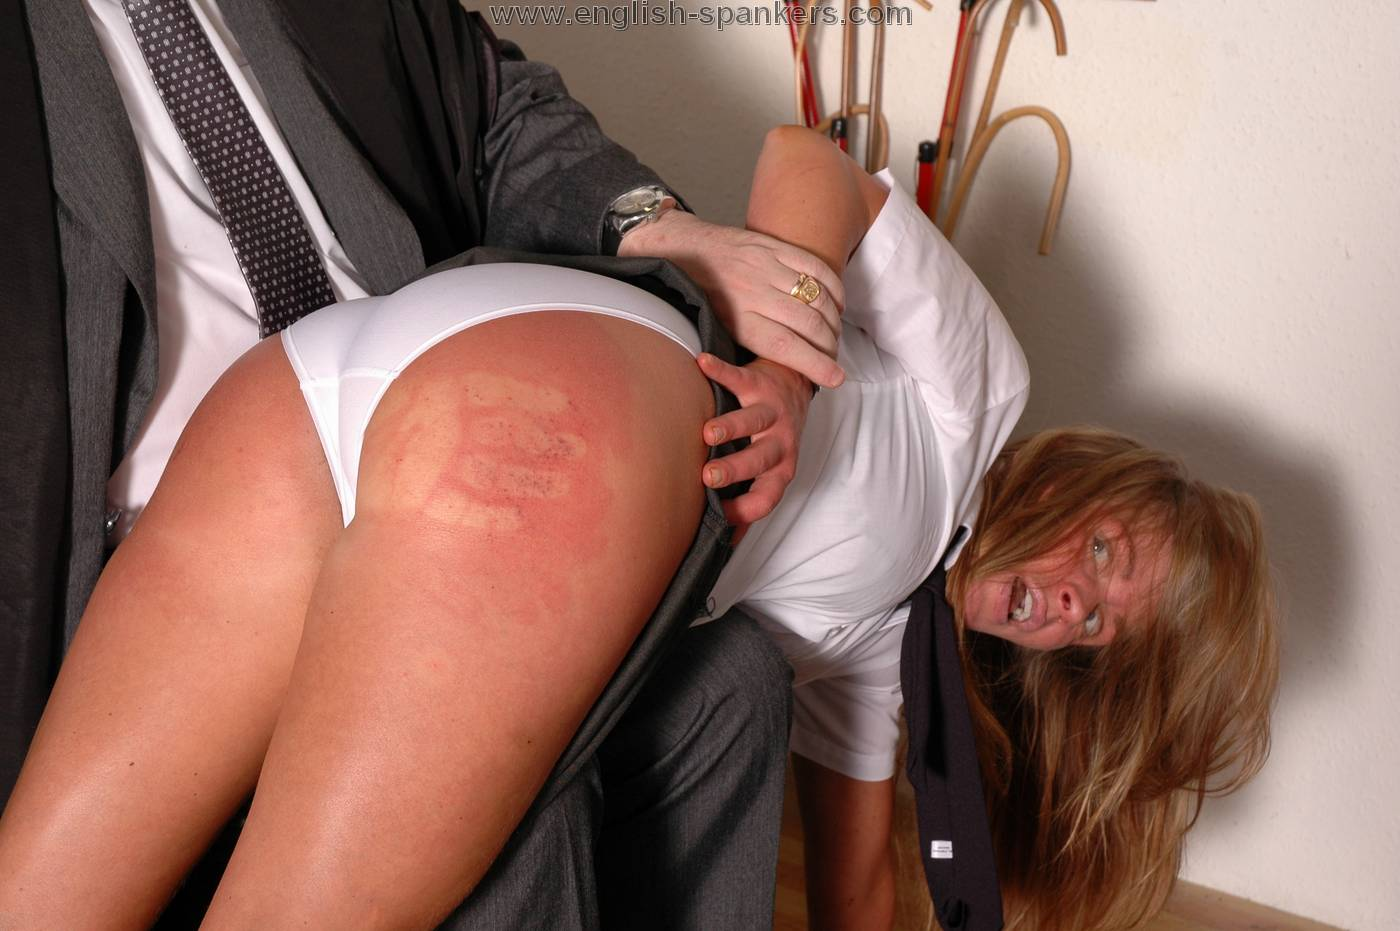 Older women spanked naked